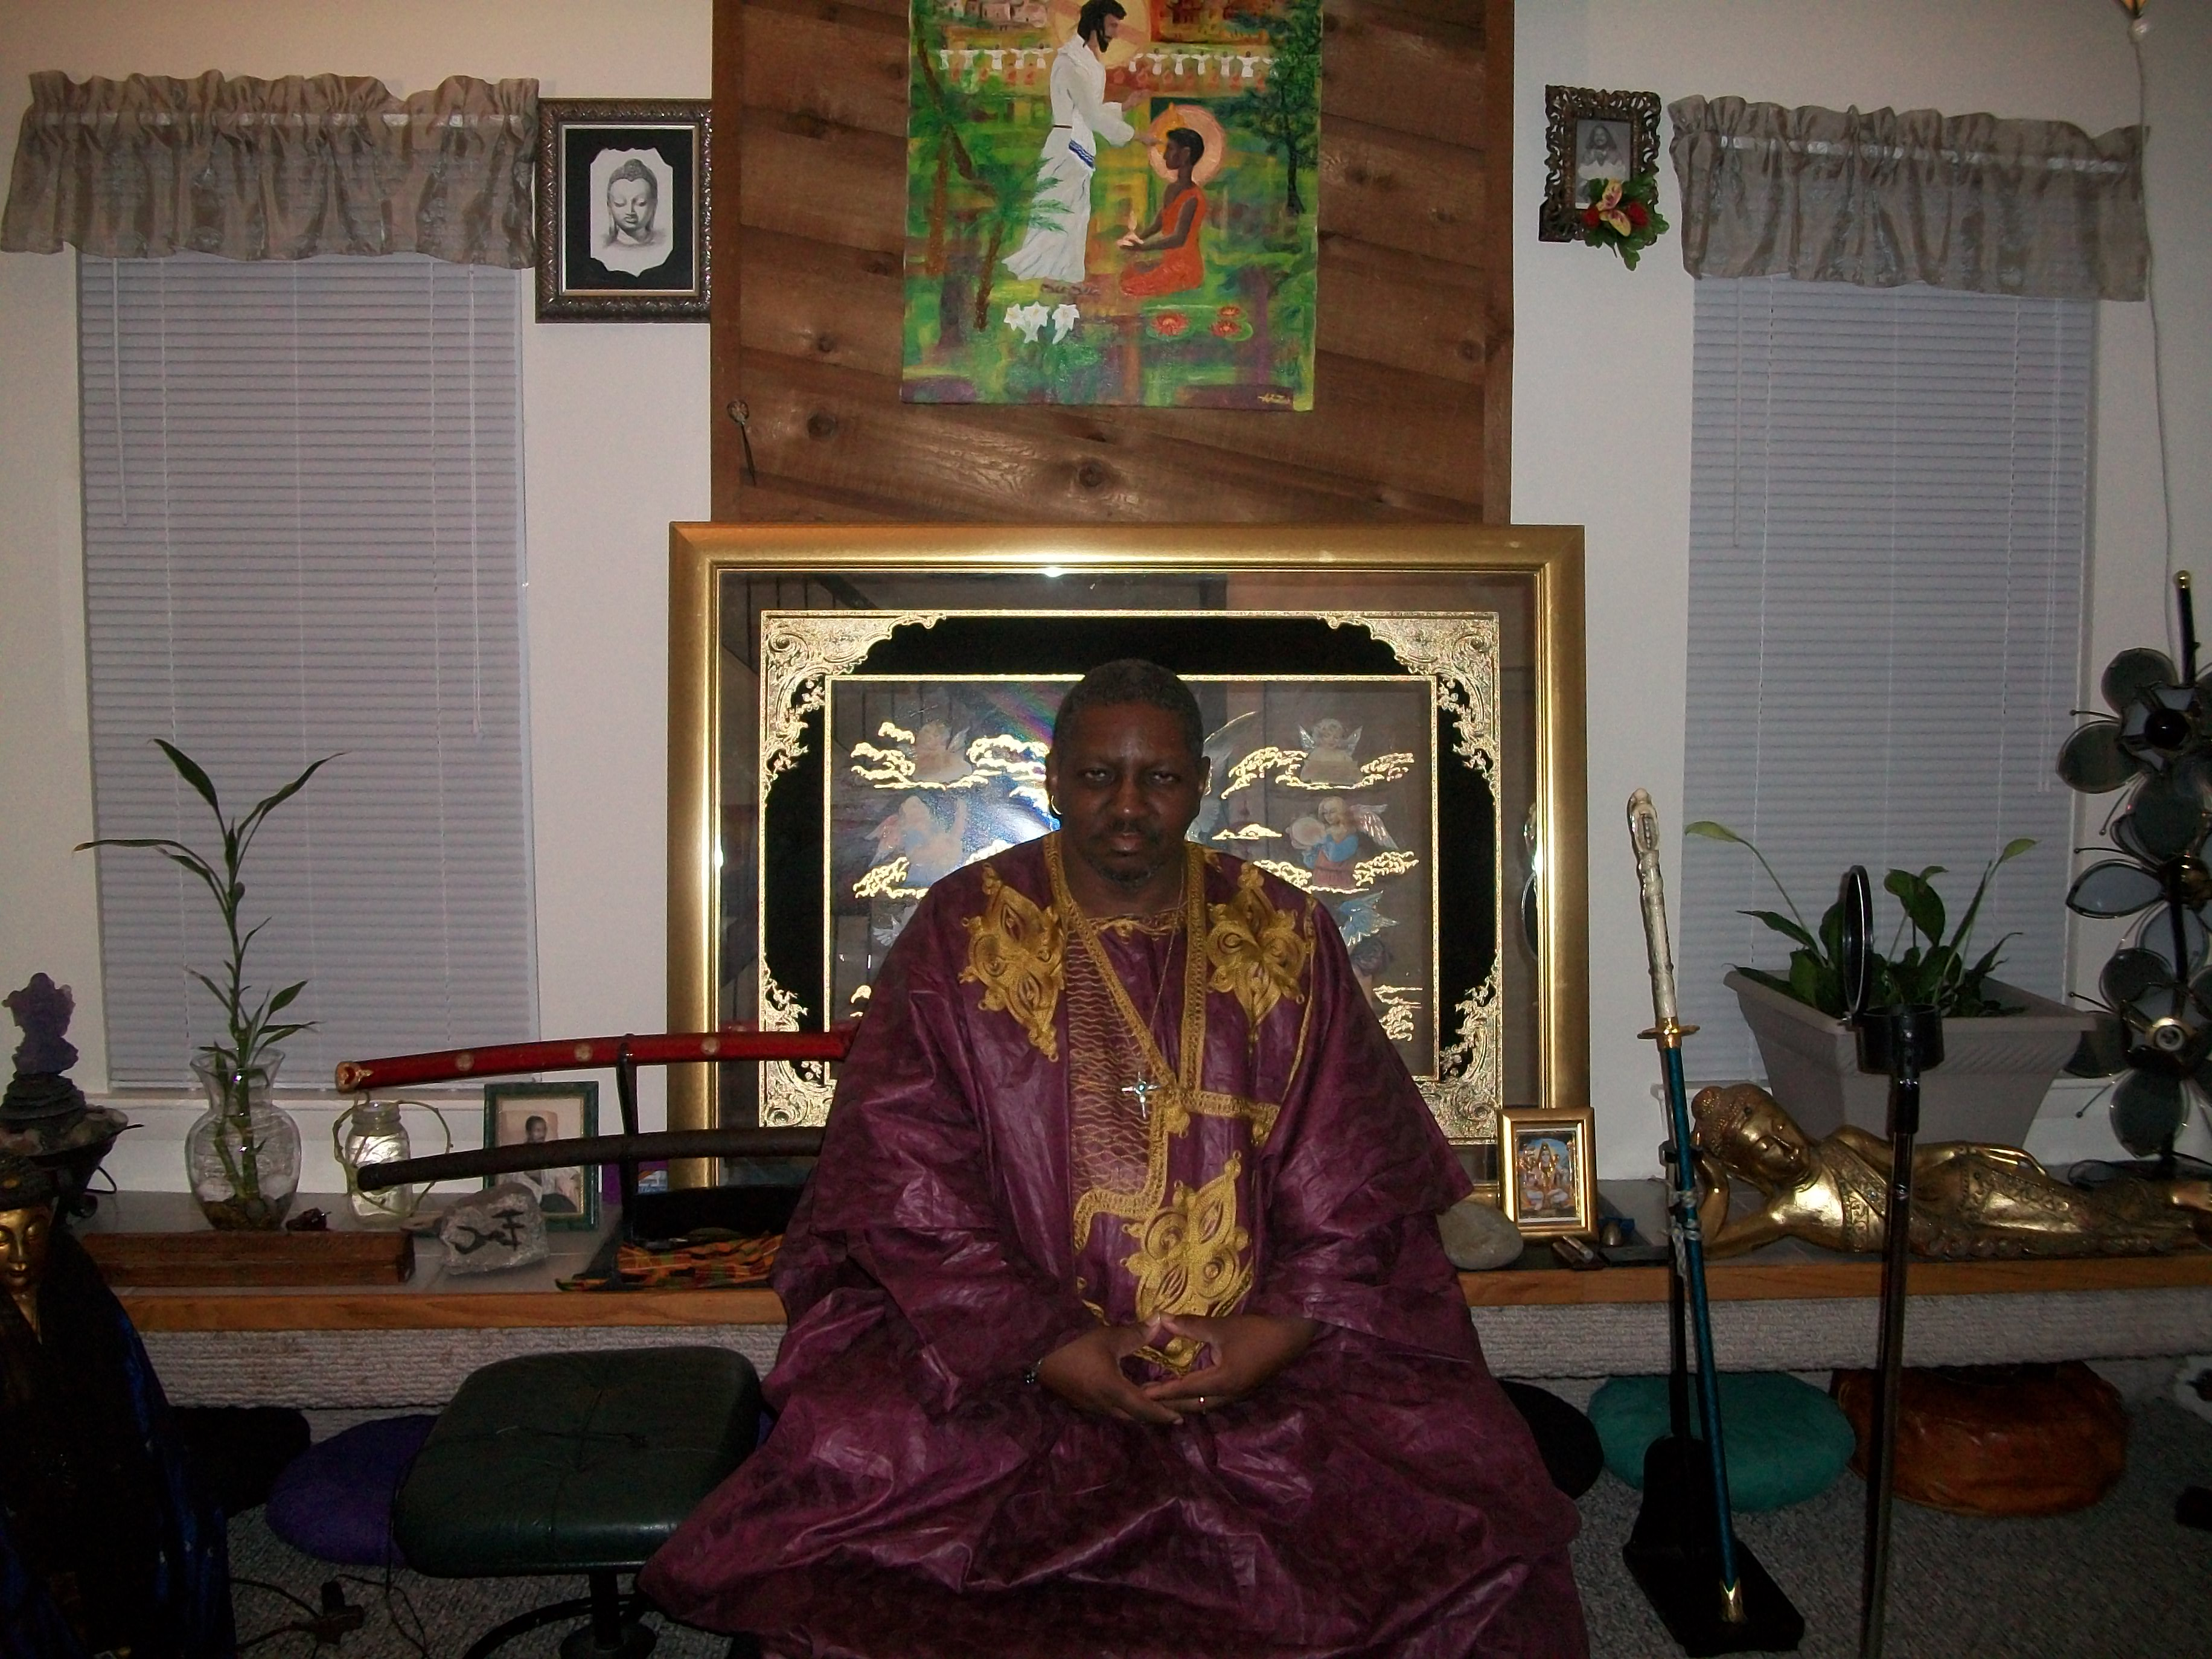 Vernon Kitabu Turner: Bridging The Gap Between East And West: Article by Brenda Andrews